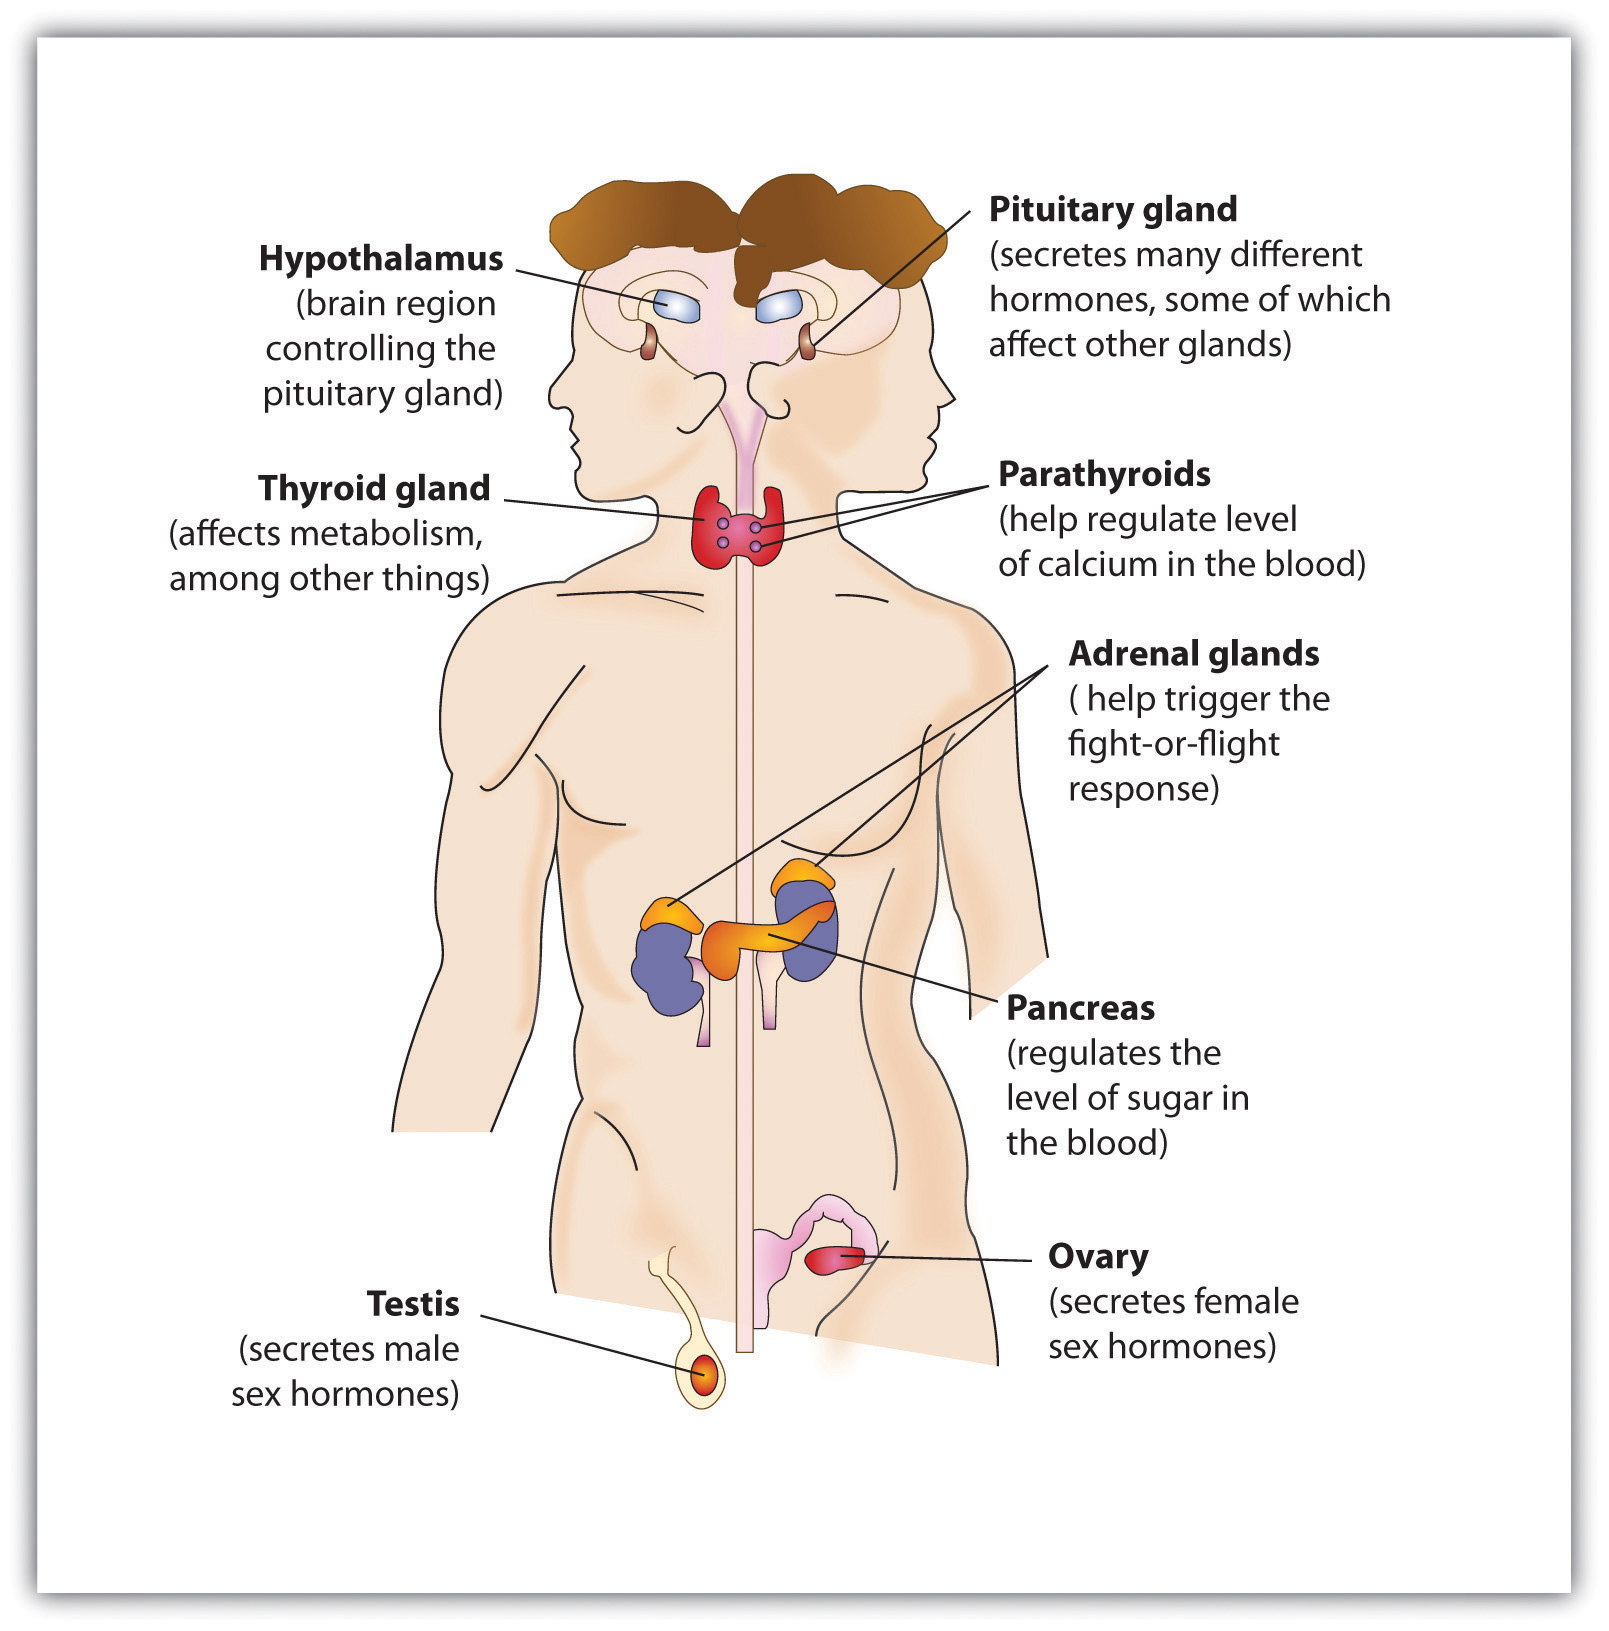 A diagram of the major glands of the endocrine system